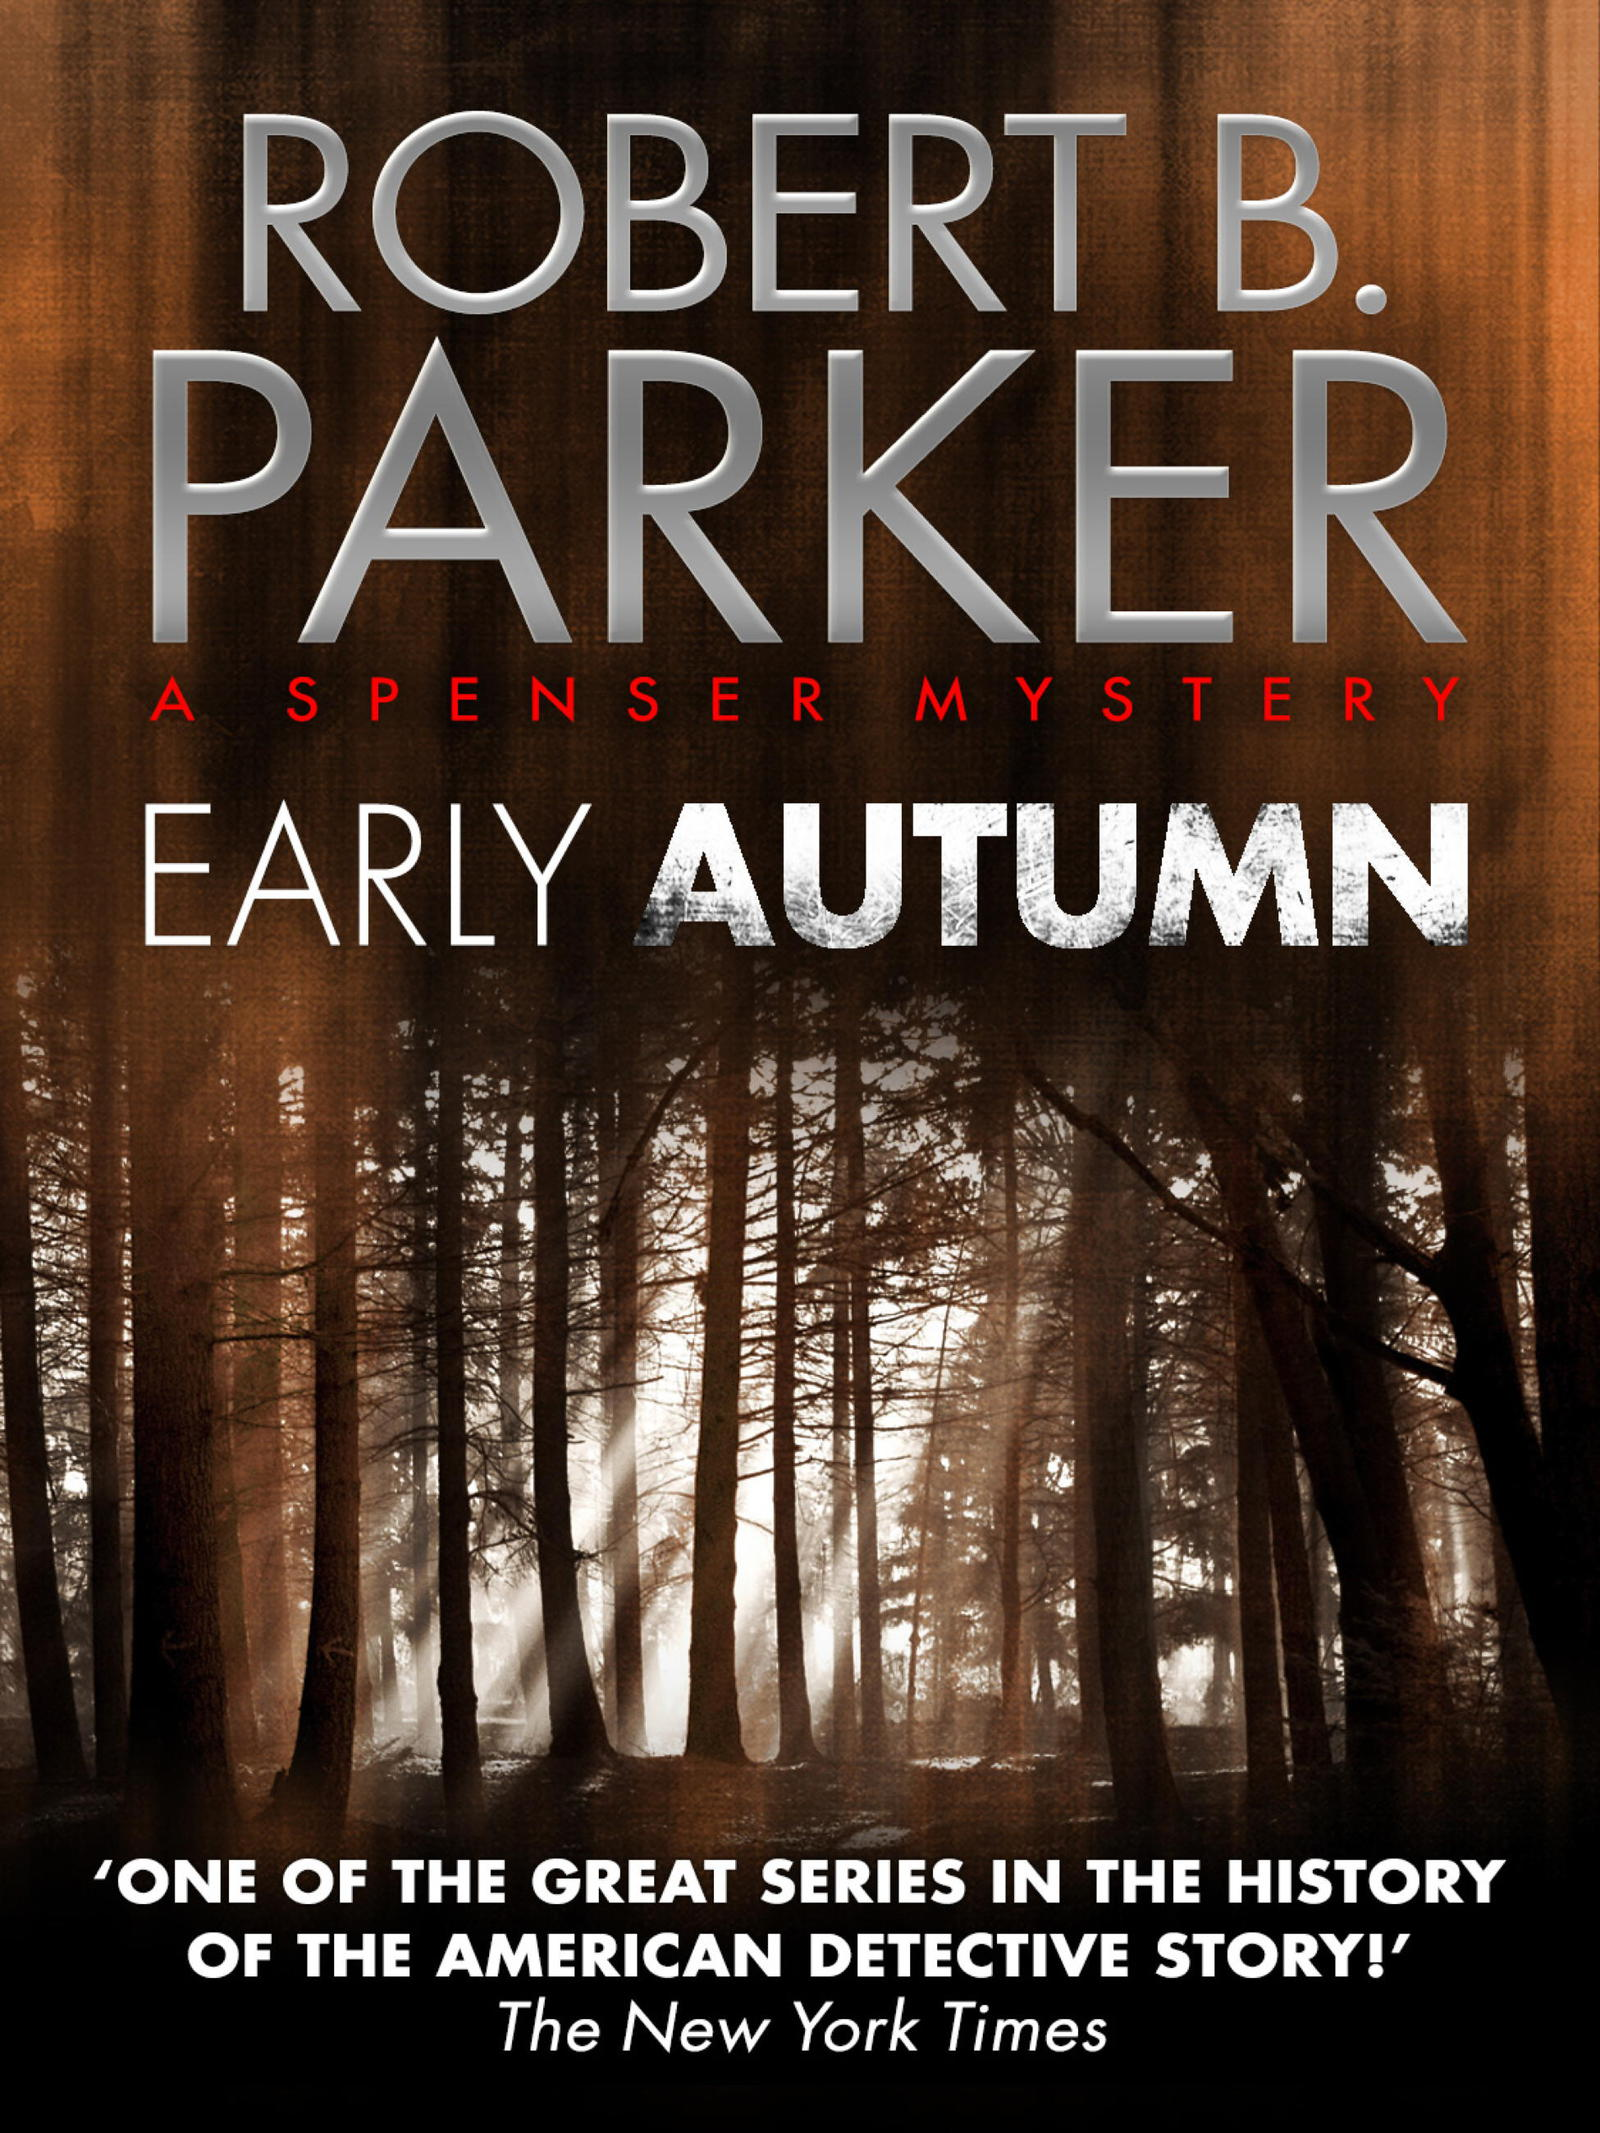 Early Autumn (A Spenser Mystery)